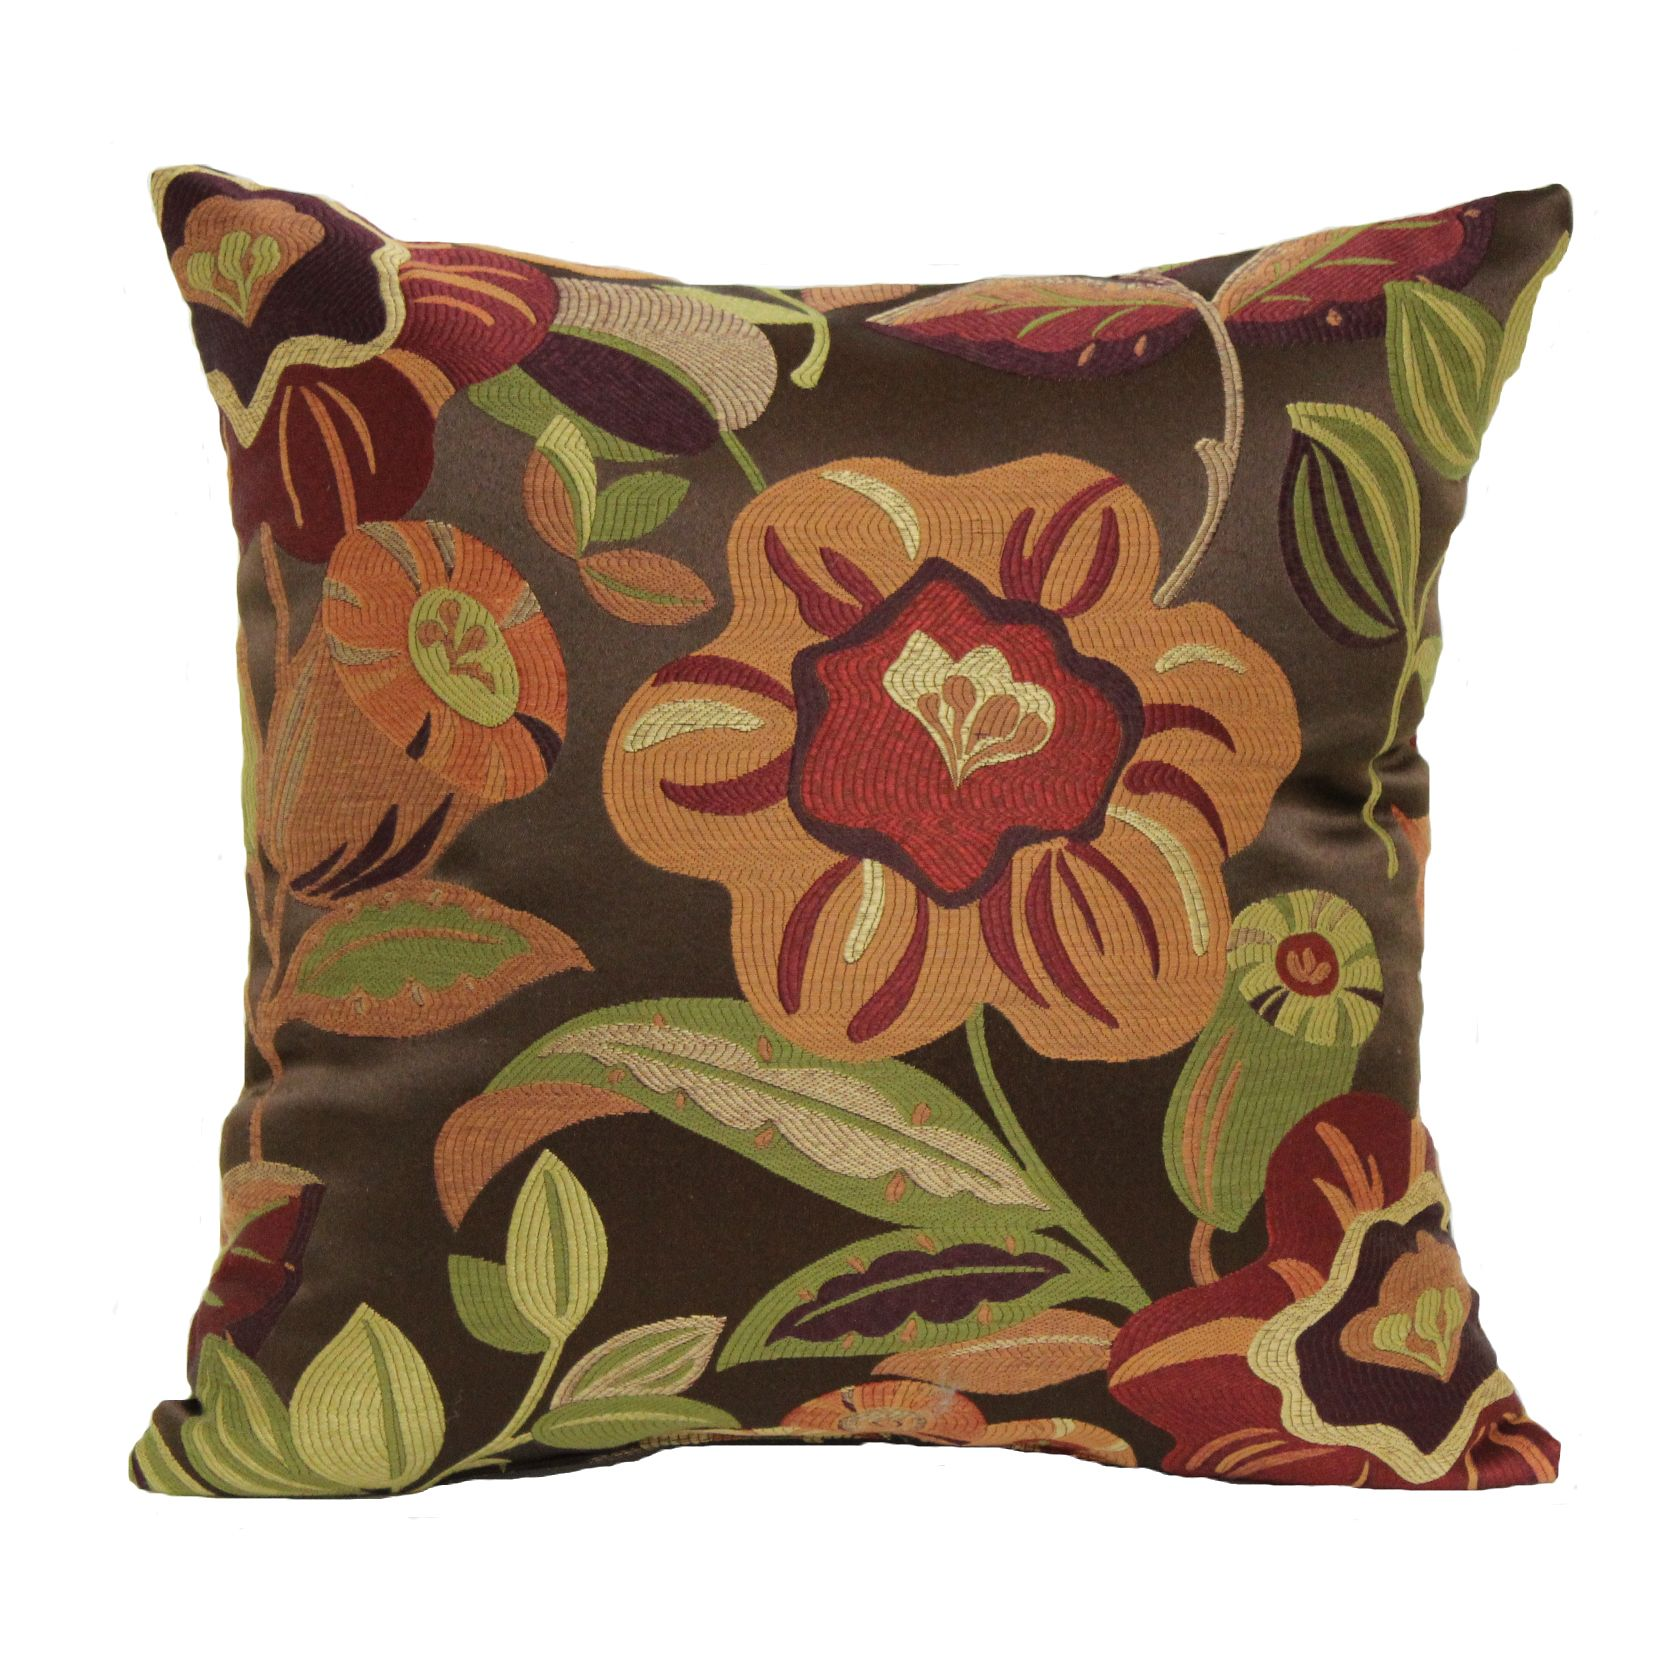 brentwood originals chair pads purple dining cushions upc 047218084880 tanille decorative pillow 18x18